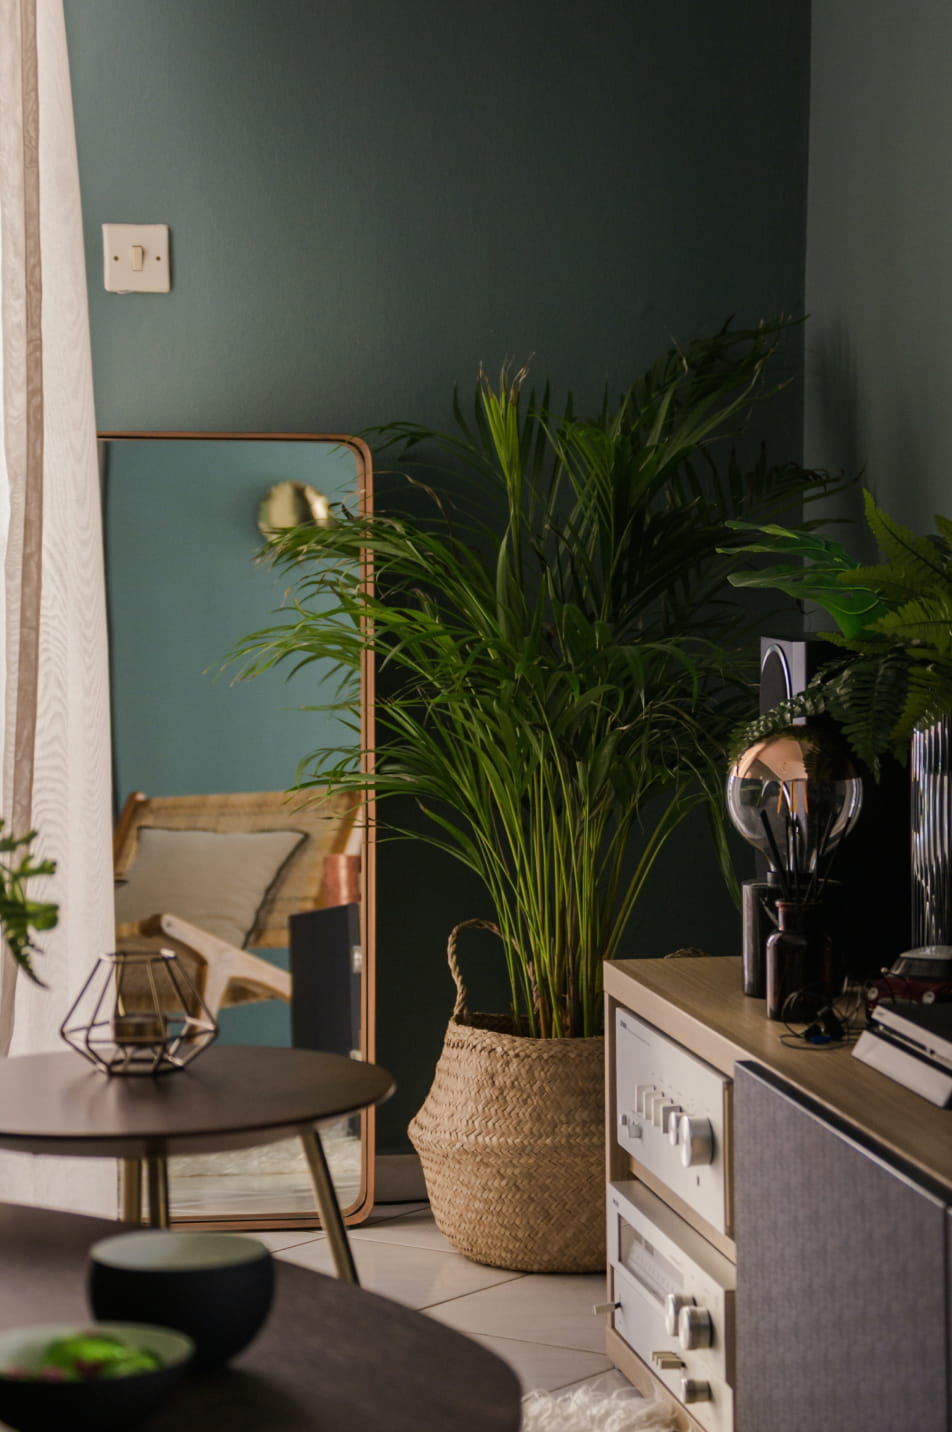 Room corner with mirror and plant